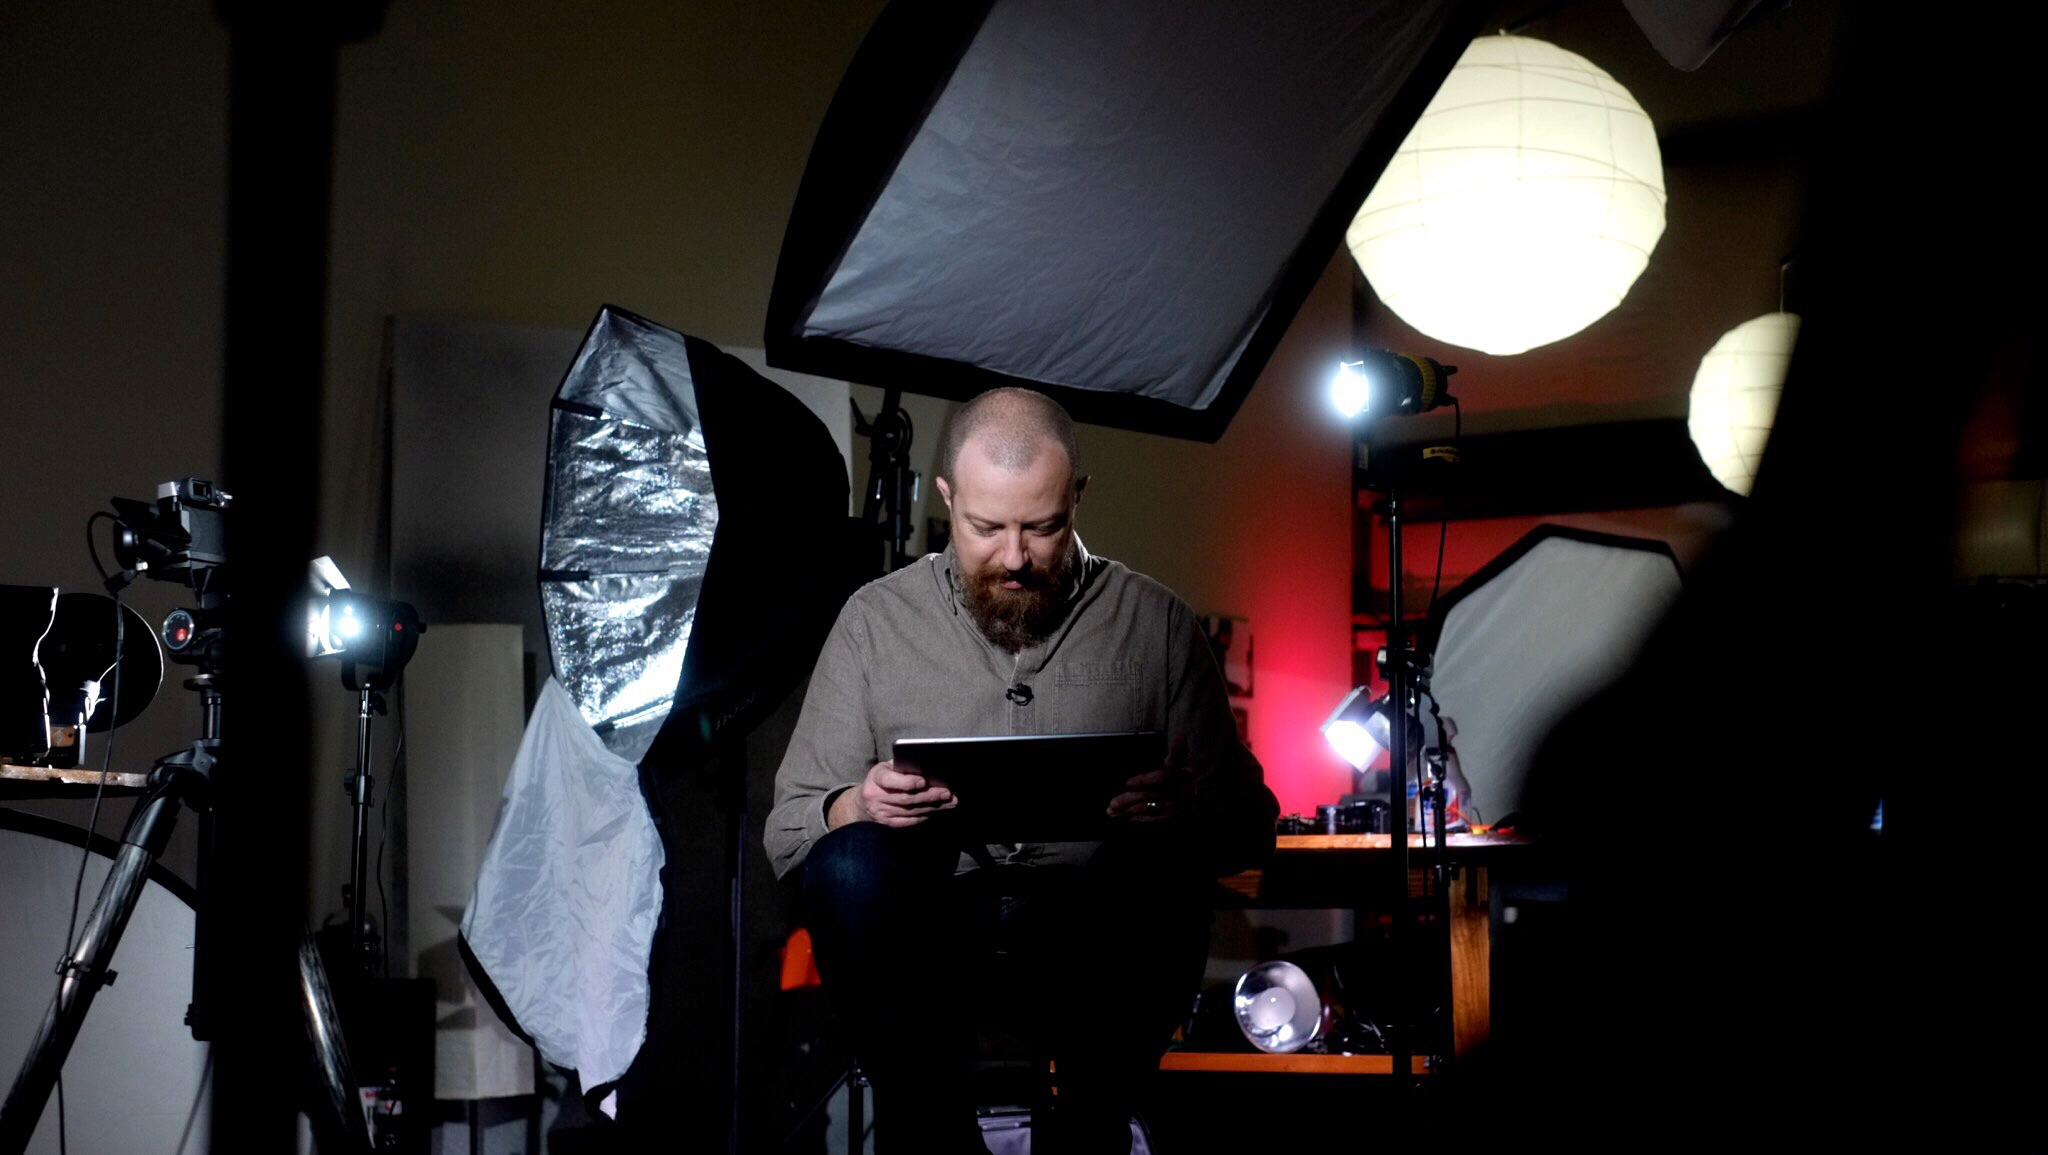 That's me, reviewing notes for an upcoming shot or maybe playing with a photo we just made.